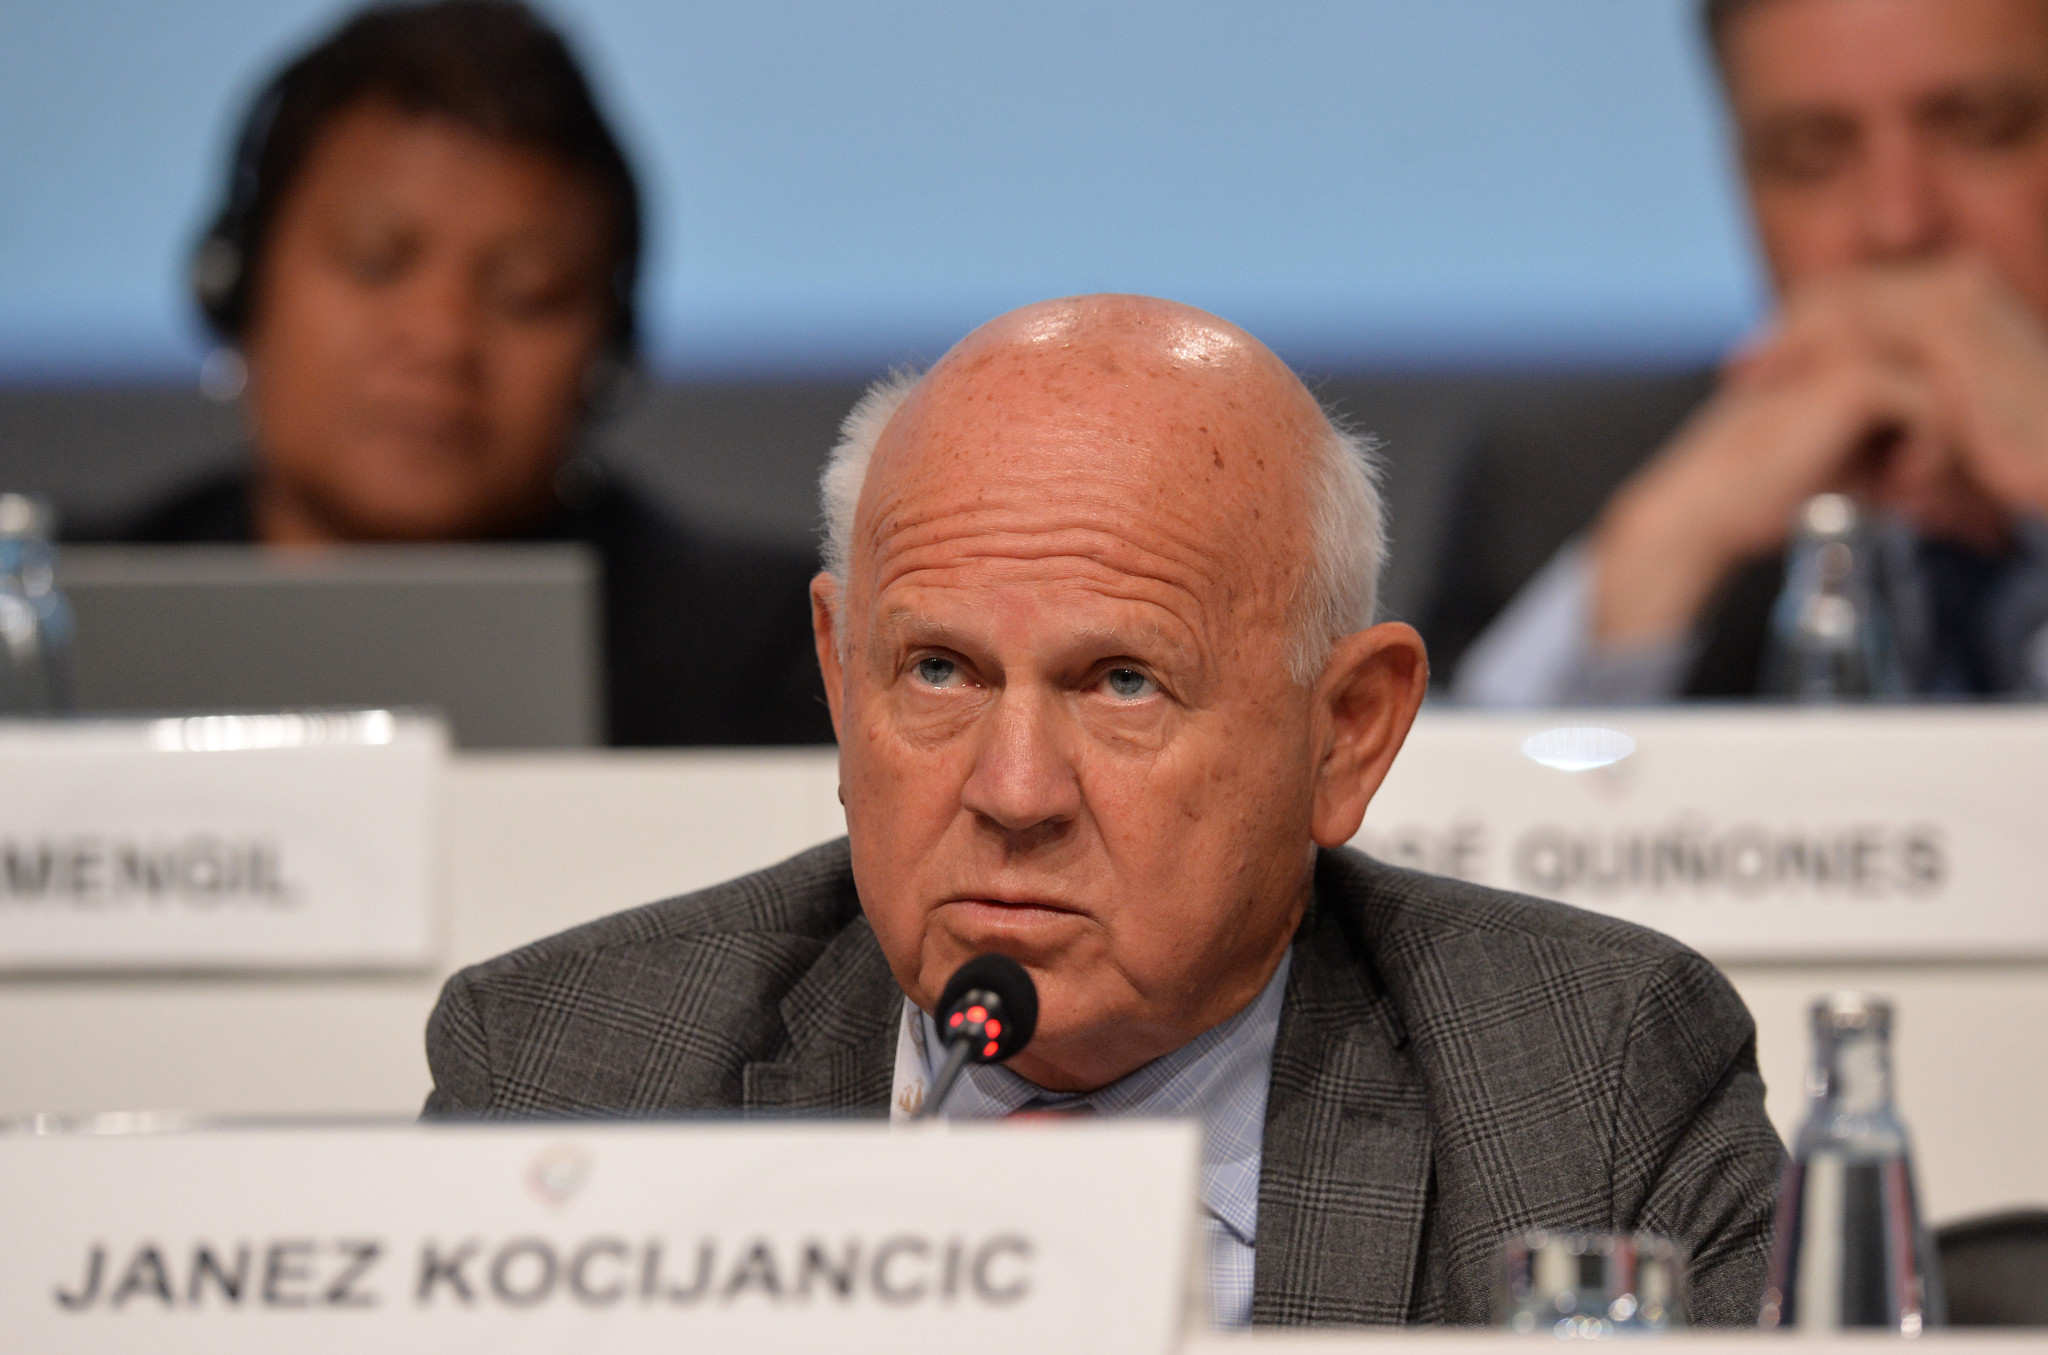 Janez Kocijančič is set to be elected unopposed as permanent EOC President ©Getty Images